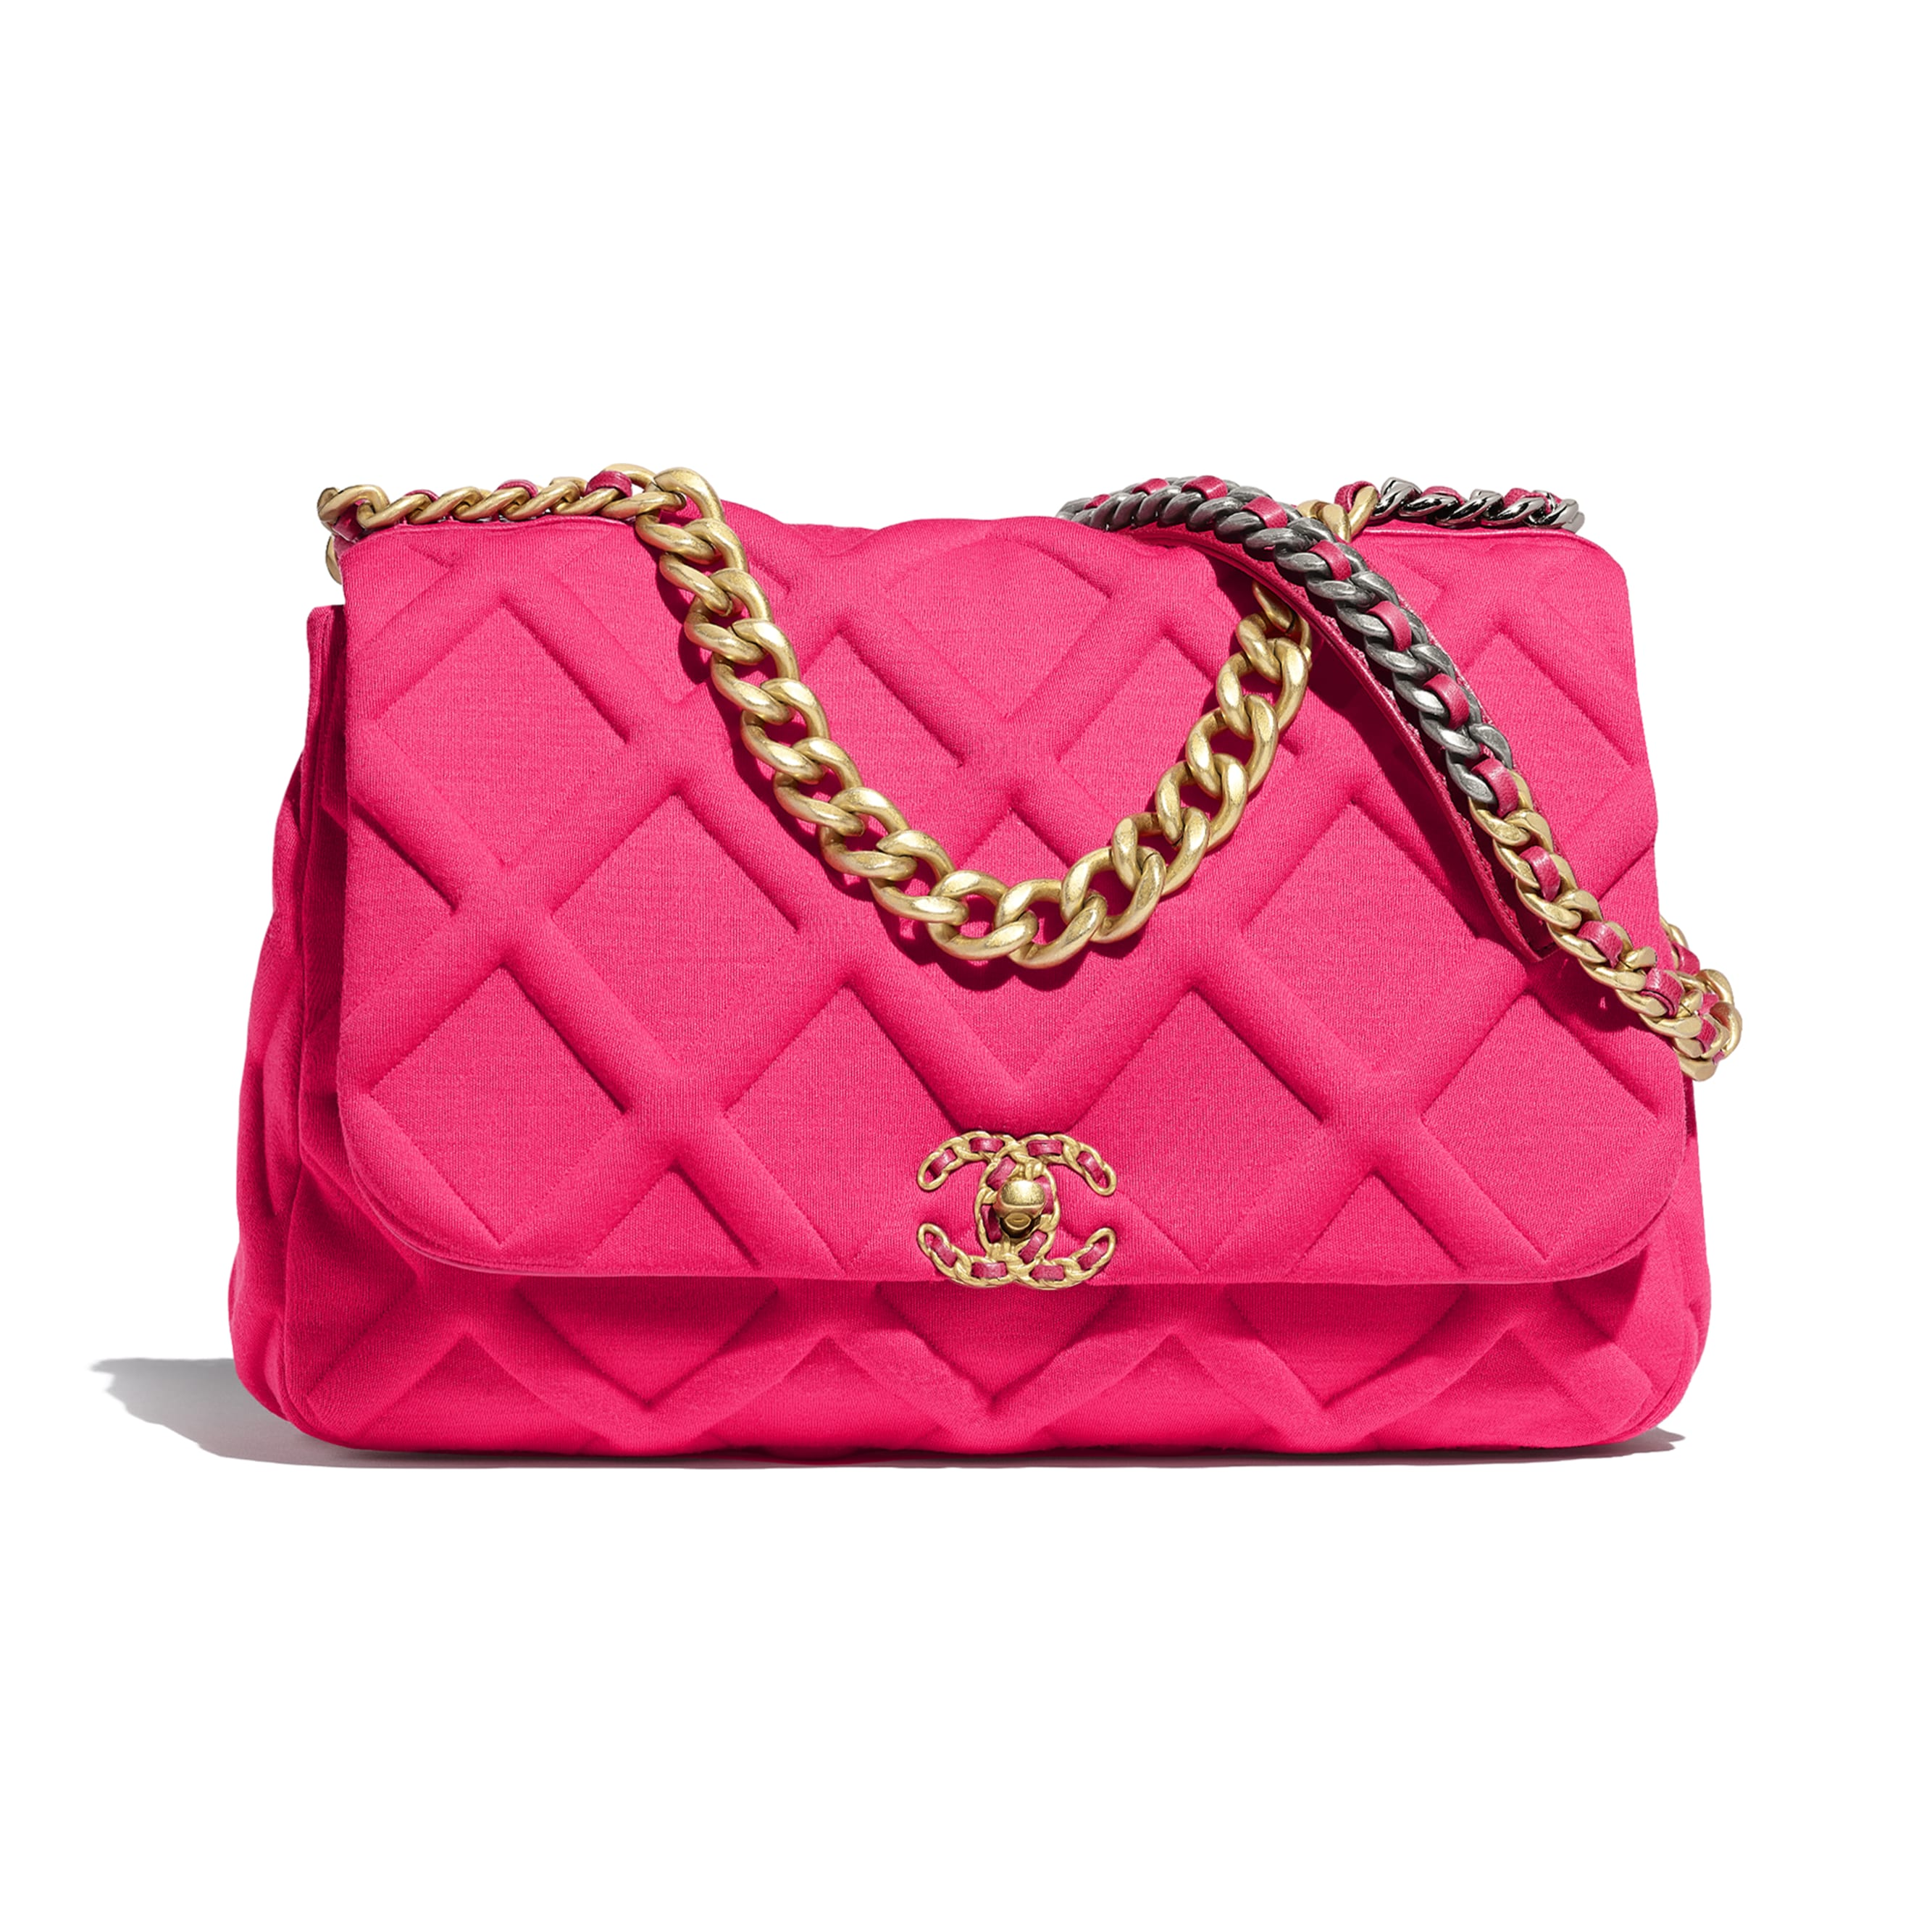 CHANEL 19 Maxi Flap Bag - Pink - Jersey, Gold-Tone, Silver-Tone & Ruthenium-Finish Metal - Default view - see standard sized version